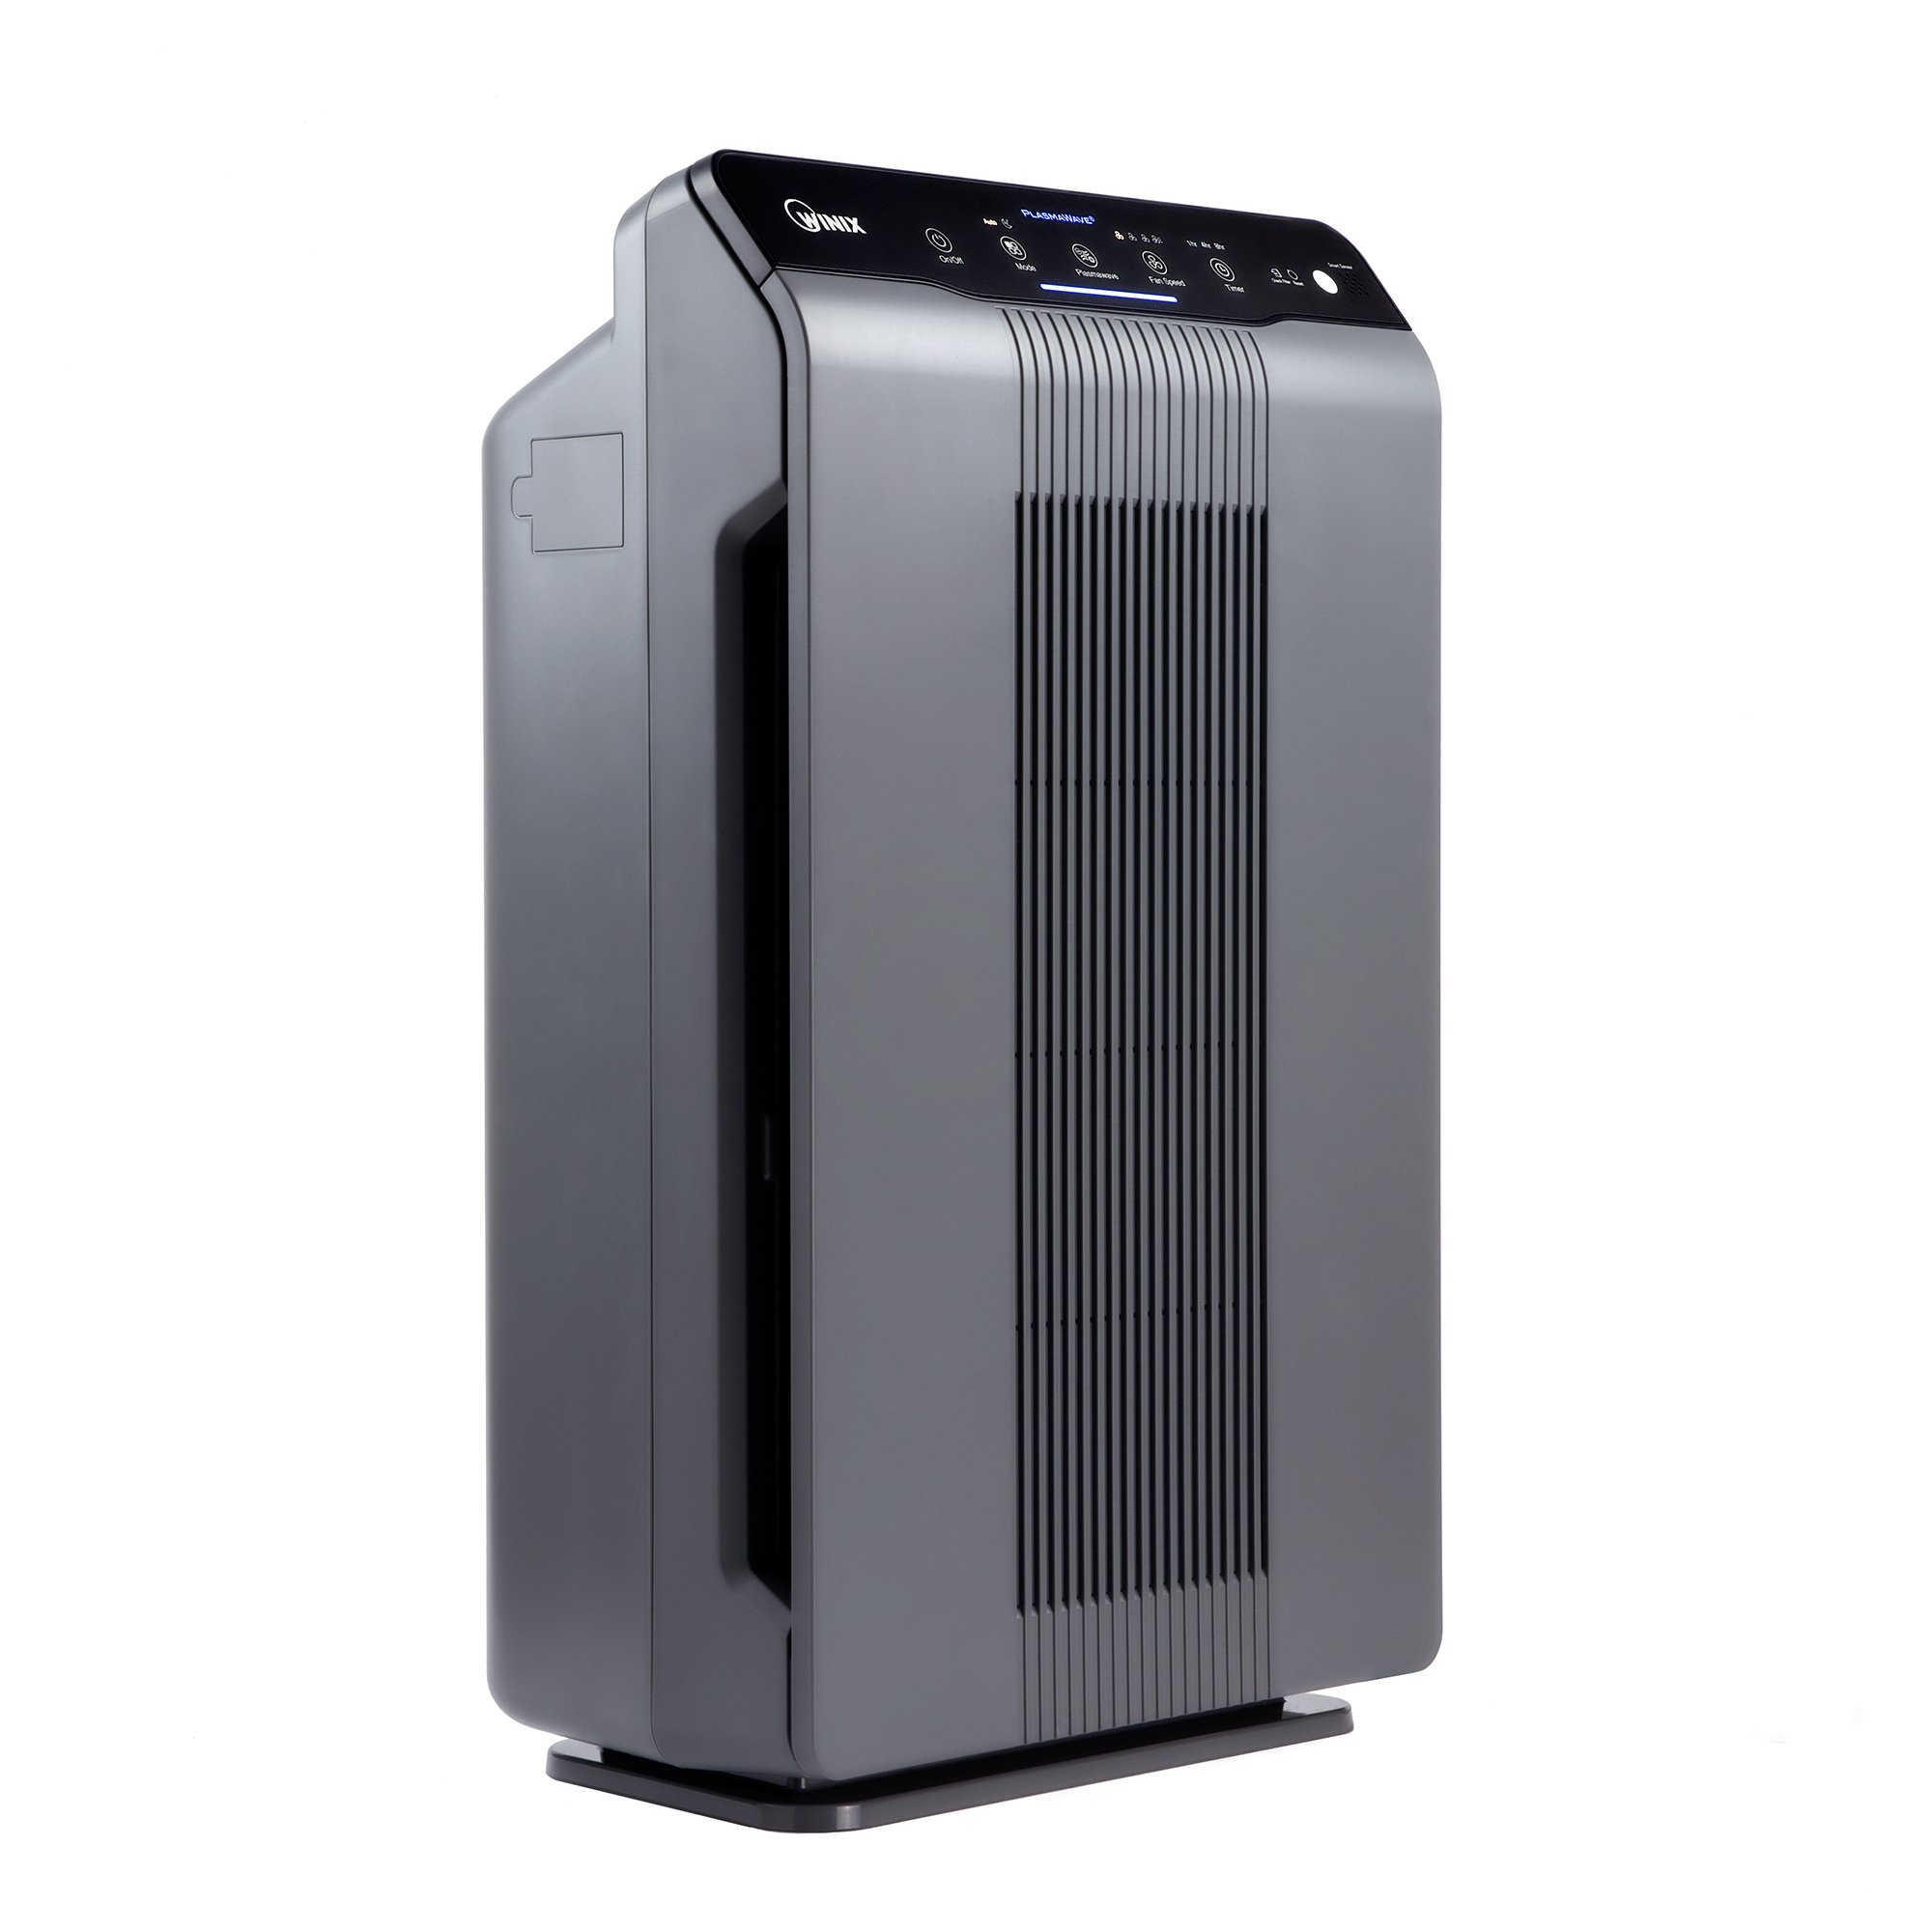 Winix 5300-2 Air Purifier with True HEPA, PlasmaWave and Odor Reducing Carbon Filter by Winix